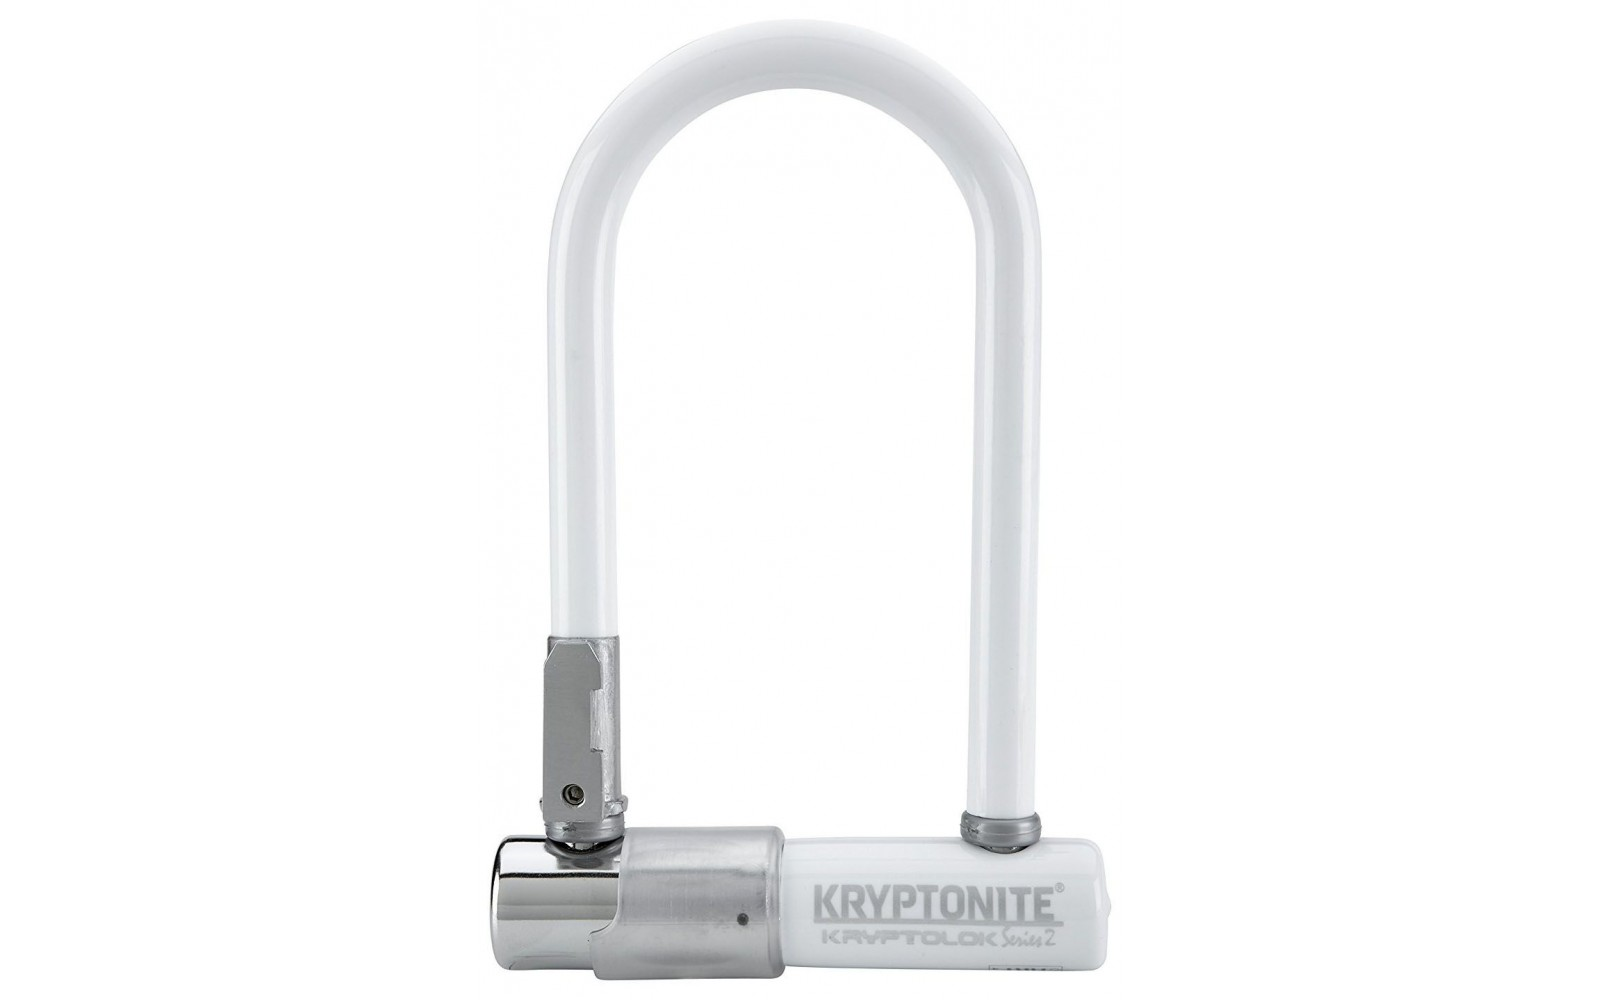 Замок на ключе для велосипеда Kryptonite U-locks KryptoLok Series 2 Mini-7 w/ FlexFrame bracket